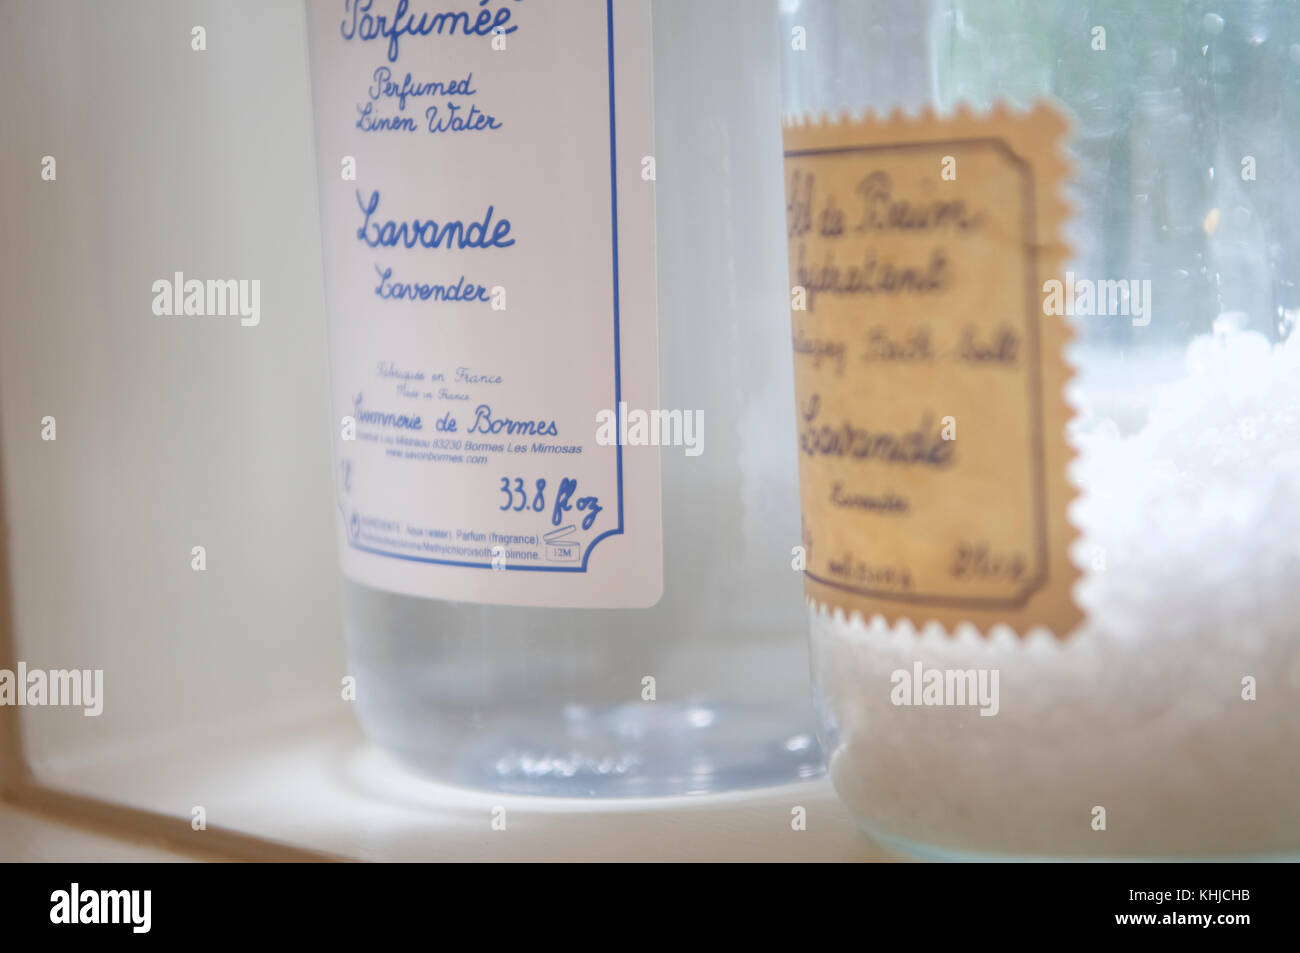 Two Old Fashioned Bottles Of Lavande Adorn A Shelf In A Bathroom In